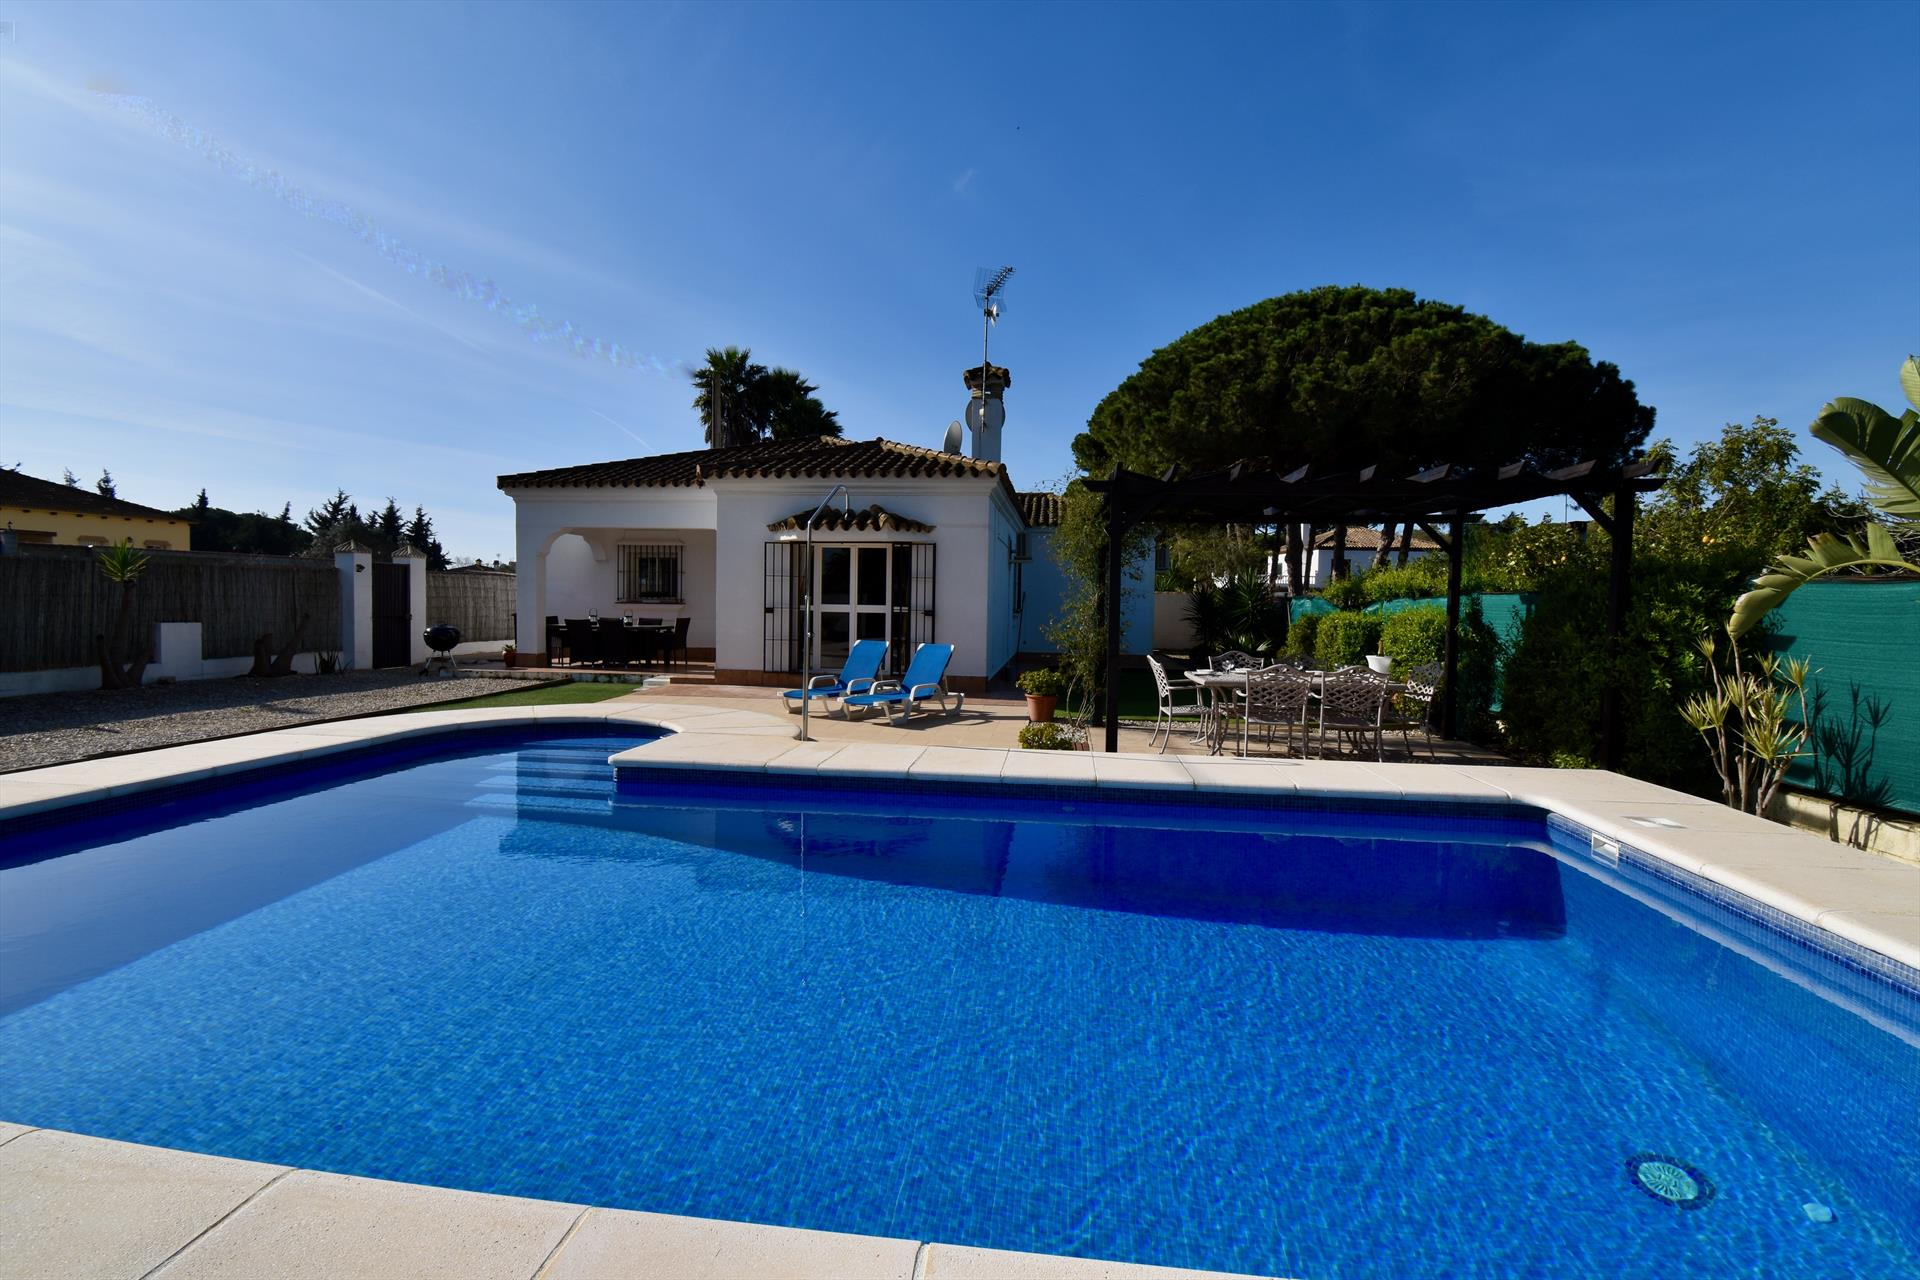 Talia, Villa  with private pool in Chiclana de la Frontera, Andalusia, Spain for 8 persons.....